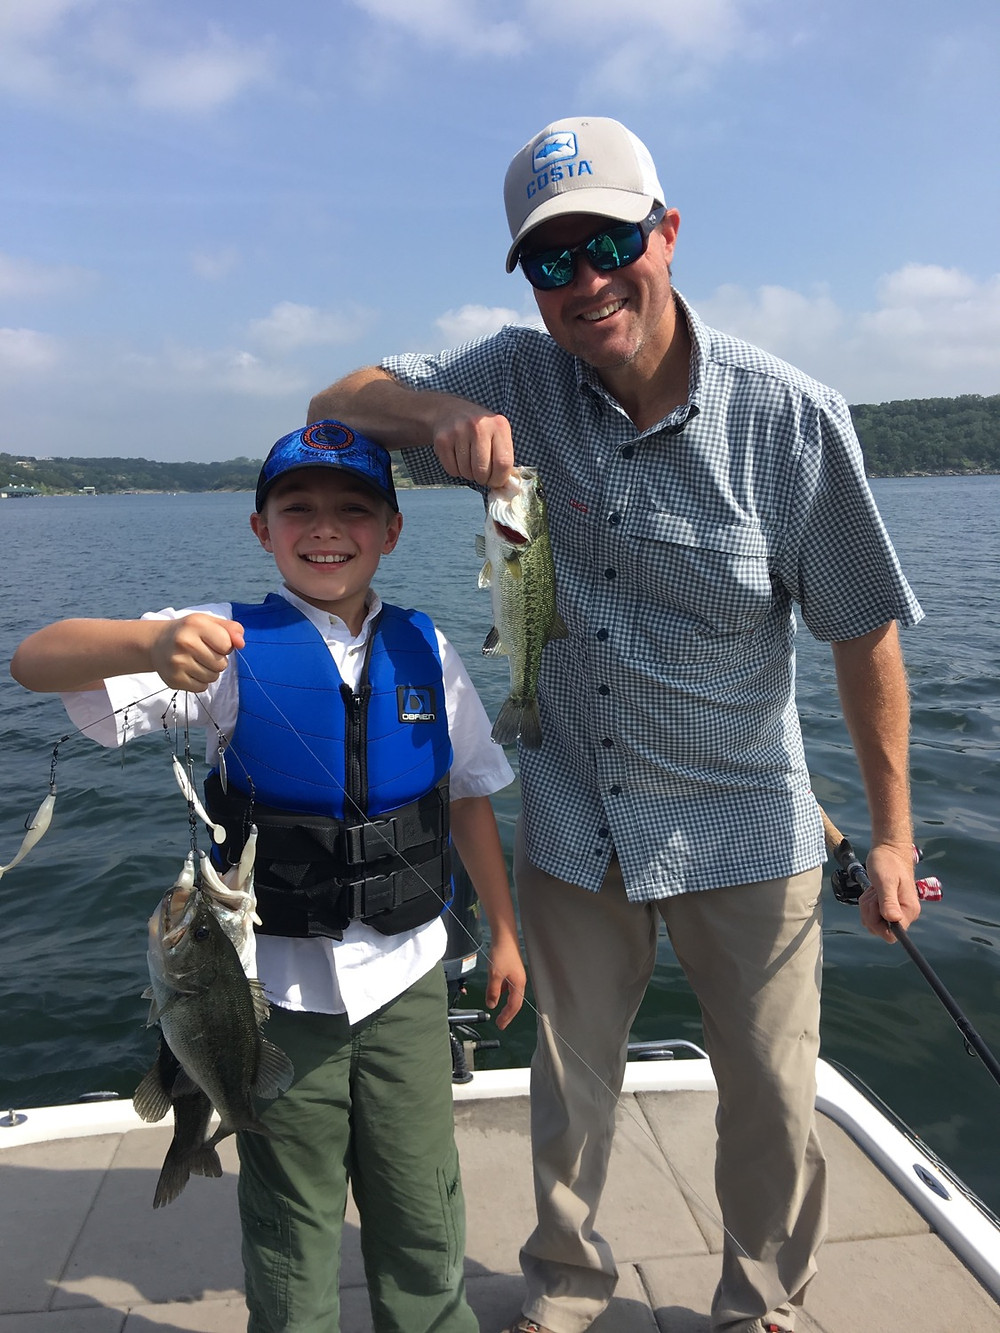 Father and Son with a few bass